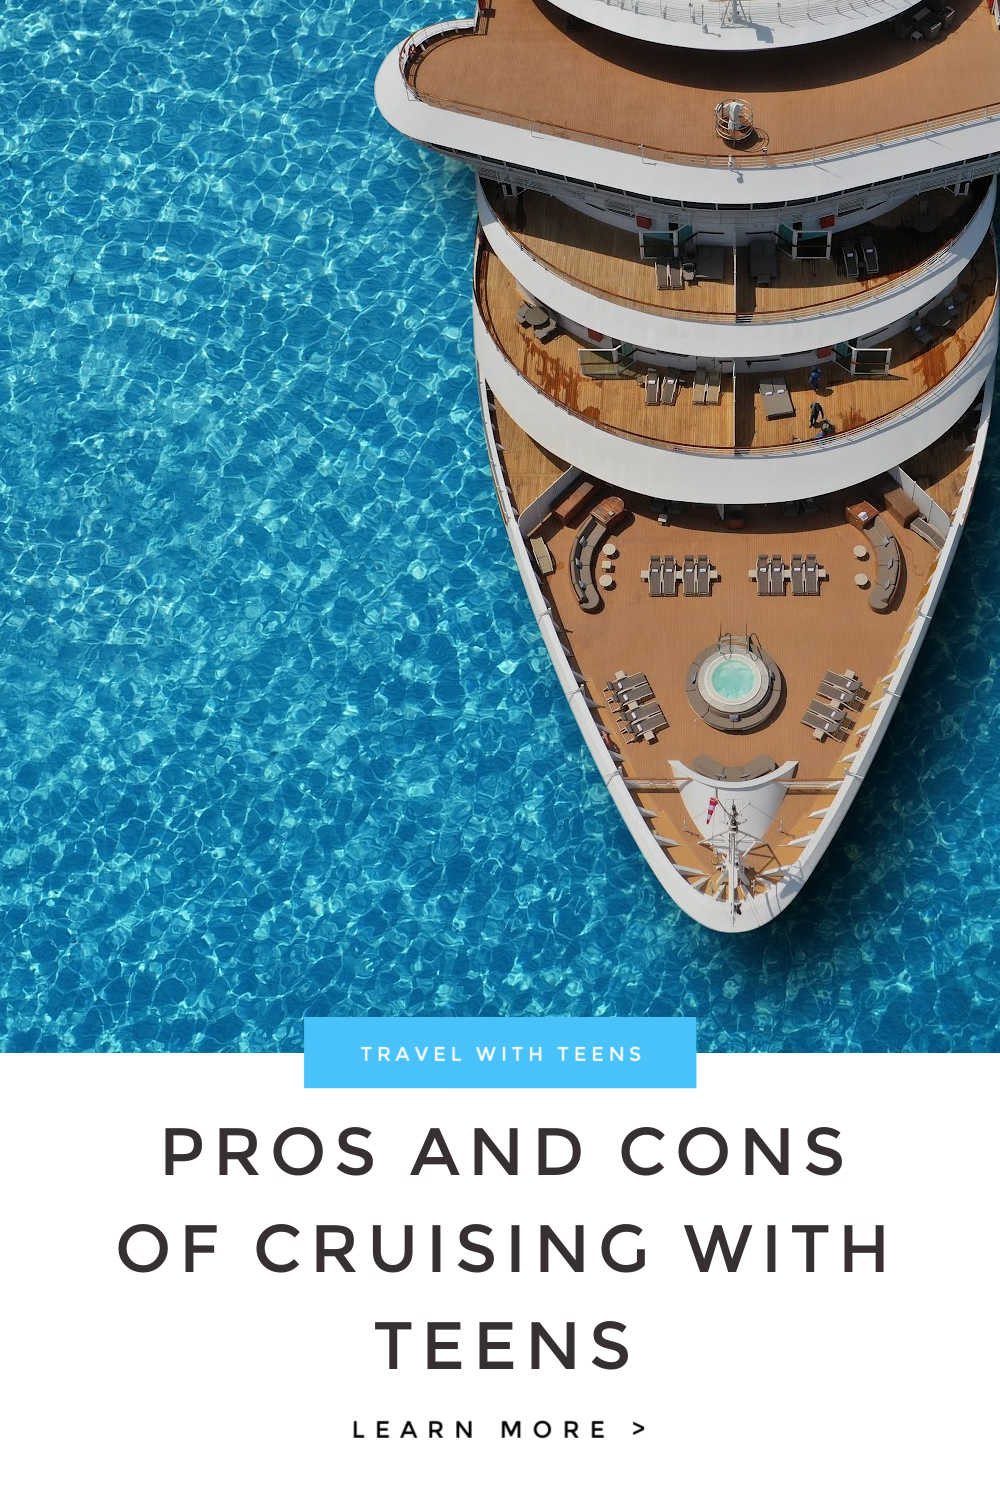 PROS AND CONS OF CRUISING WITH TEENS